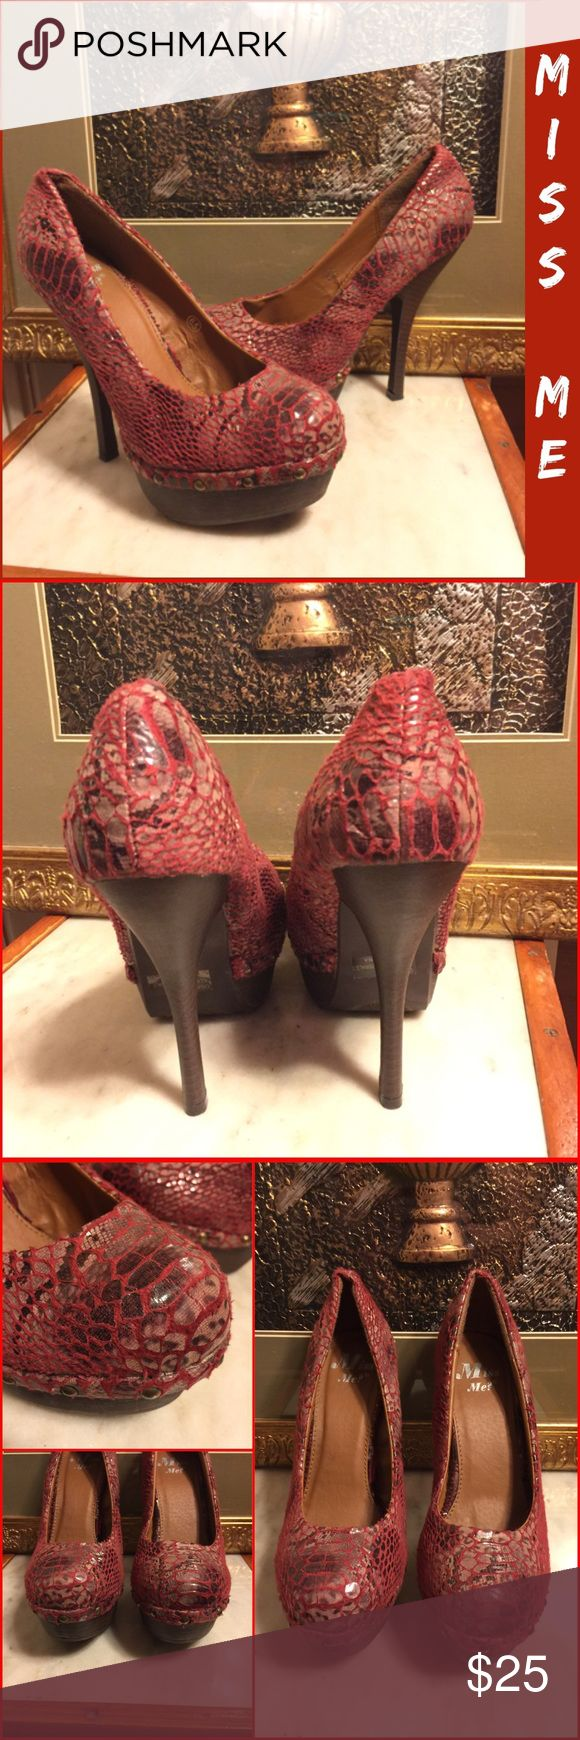 "SZ 6.5-MISS ME? RED ""SNAKESKIN"" "" OSAKA"" 5"" PUMPS RETAIL $75-LIKE NEW-ONLY SIGN OF WEAR IS ON SOLE -OWNER WORE ONCE! SZ 6.5 MEDIUM/REGULAR WIDTH MISS ME? "" OSAKA-4"" MULTI-COLOR RED/PINK/BLACK TEXTURED SNAKESKIN LOOK 5"" HEEL/2"" FRONT PLATFORM PUMPS. BRASS STUD ACCENTS ALL AROUND BASE! ALL MAN-MADE MATERIALS. PLEASE DO NOT HESITATE TO ASK ANY QUESTIONS. #likenew #missme? #highheel #platformpumps #redmulticolor #textuted#snakeskinprint #pumps Miss Me Shoes Platforms"